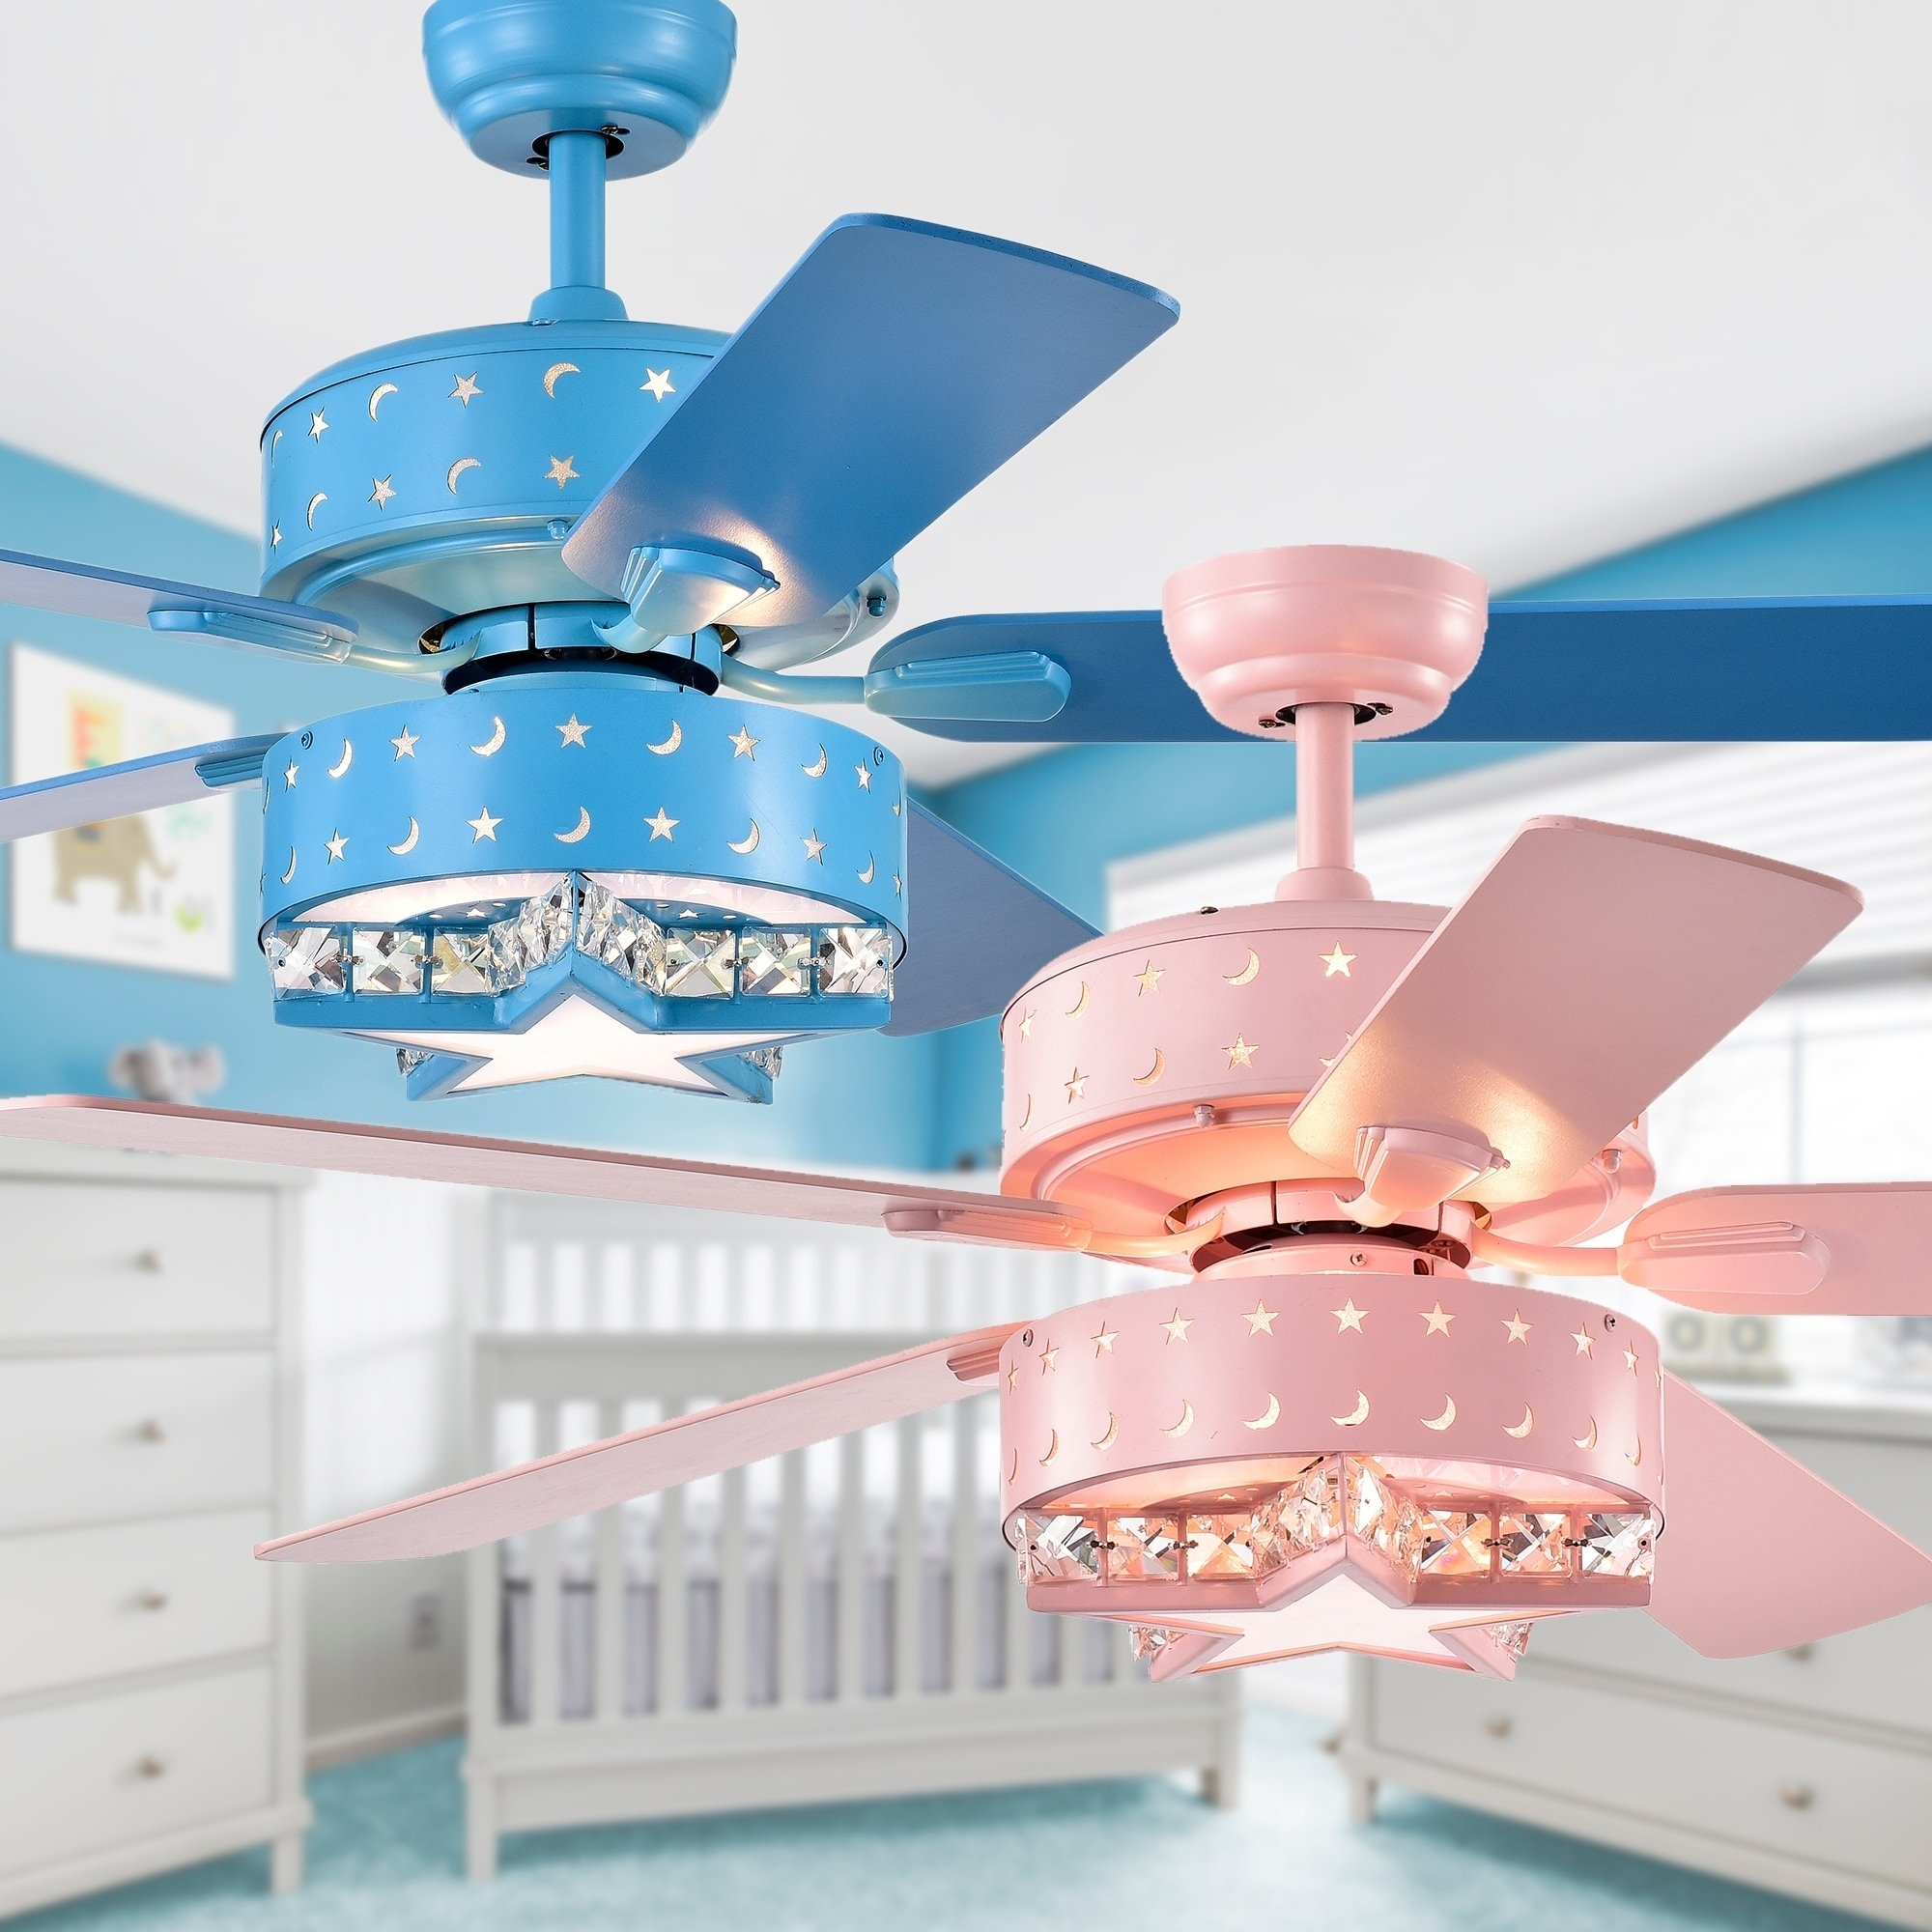 Funder 52-inch Star & Crescent Childrens Room Lighted Ceiling Fan (includes  Remote)